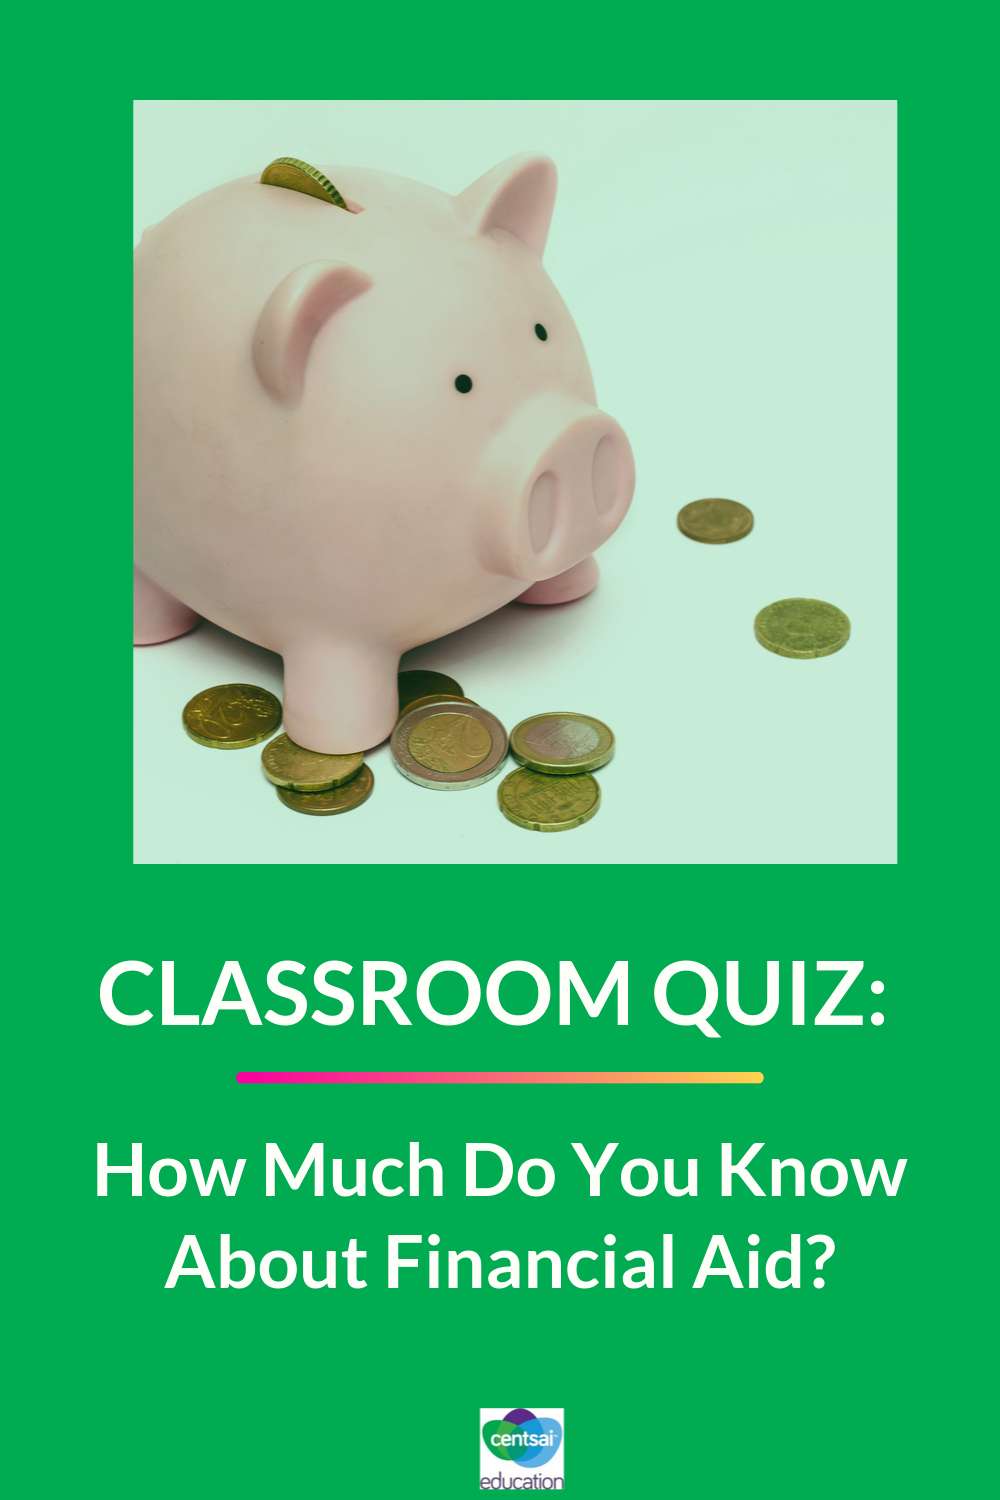 CentSai Education Quiz: How Much Do You Know About Financial Aid